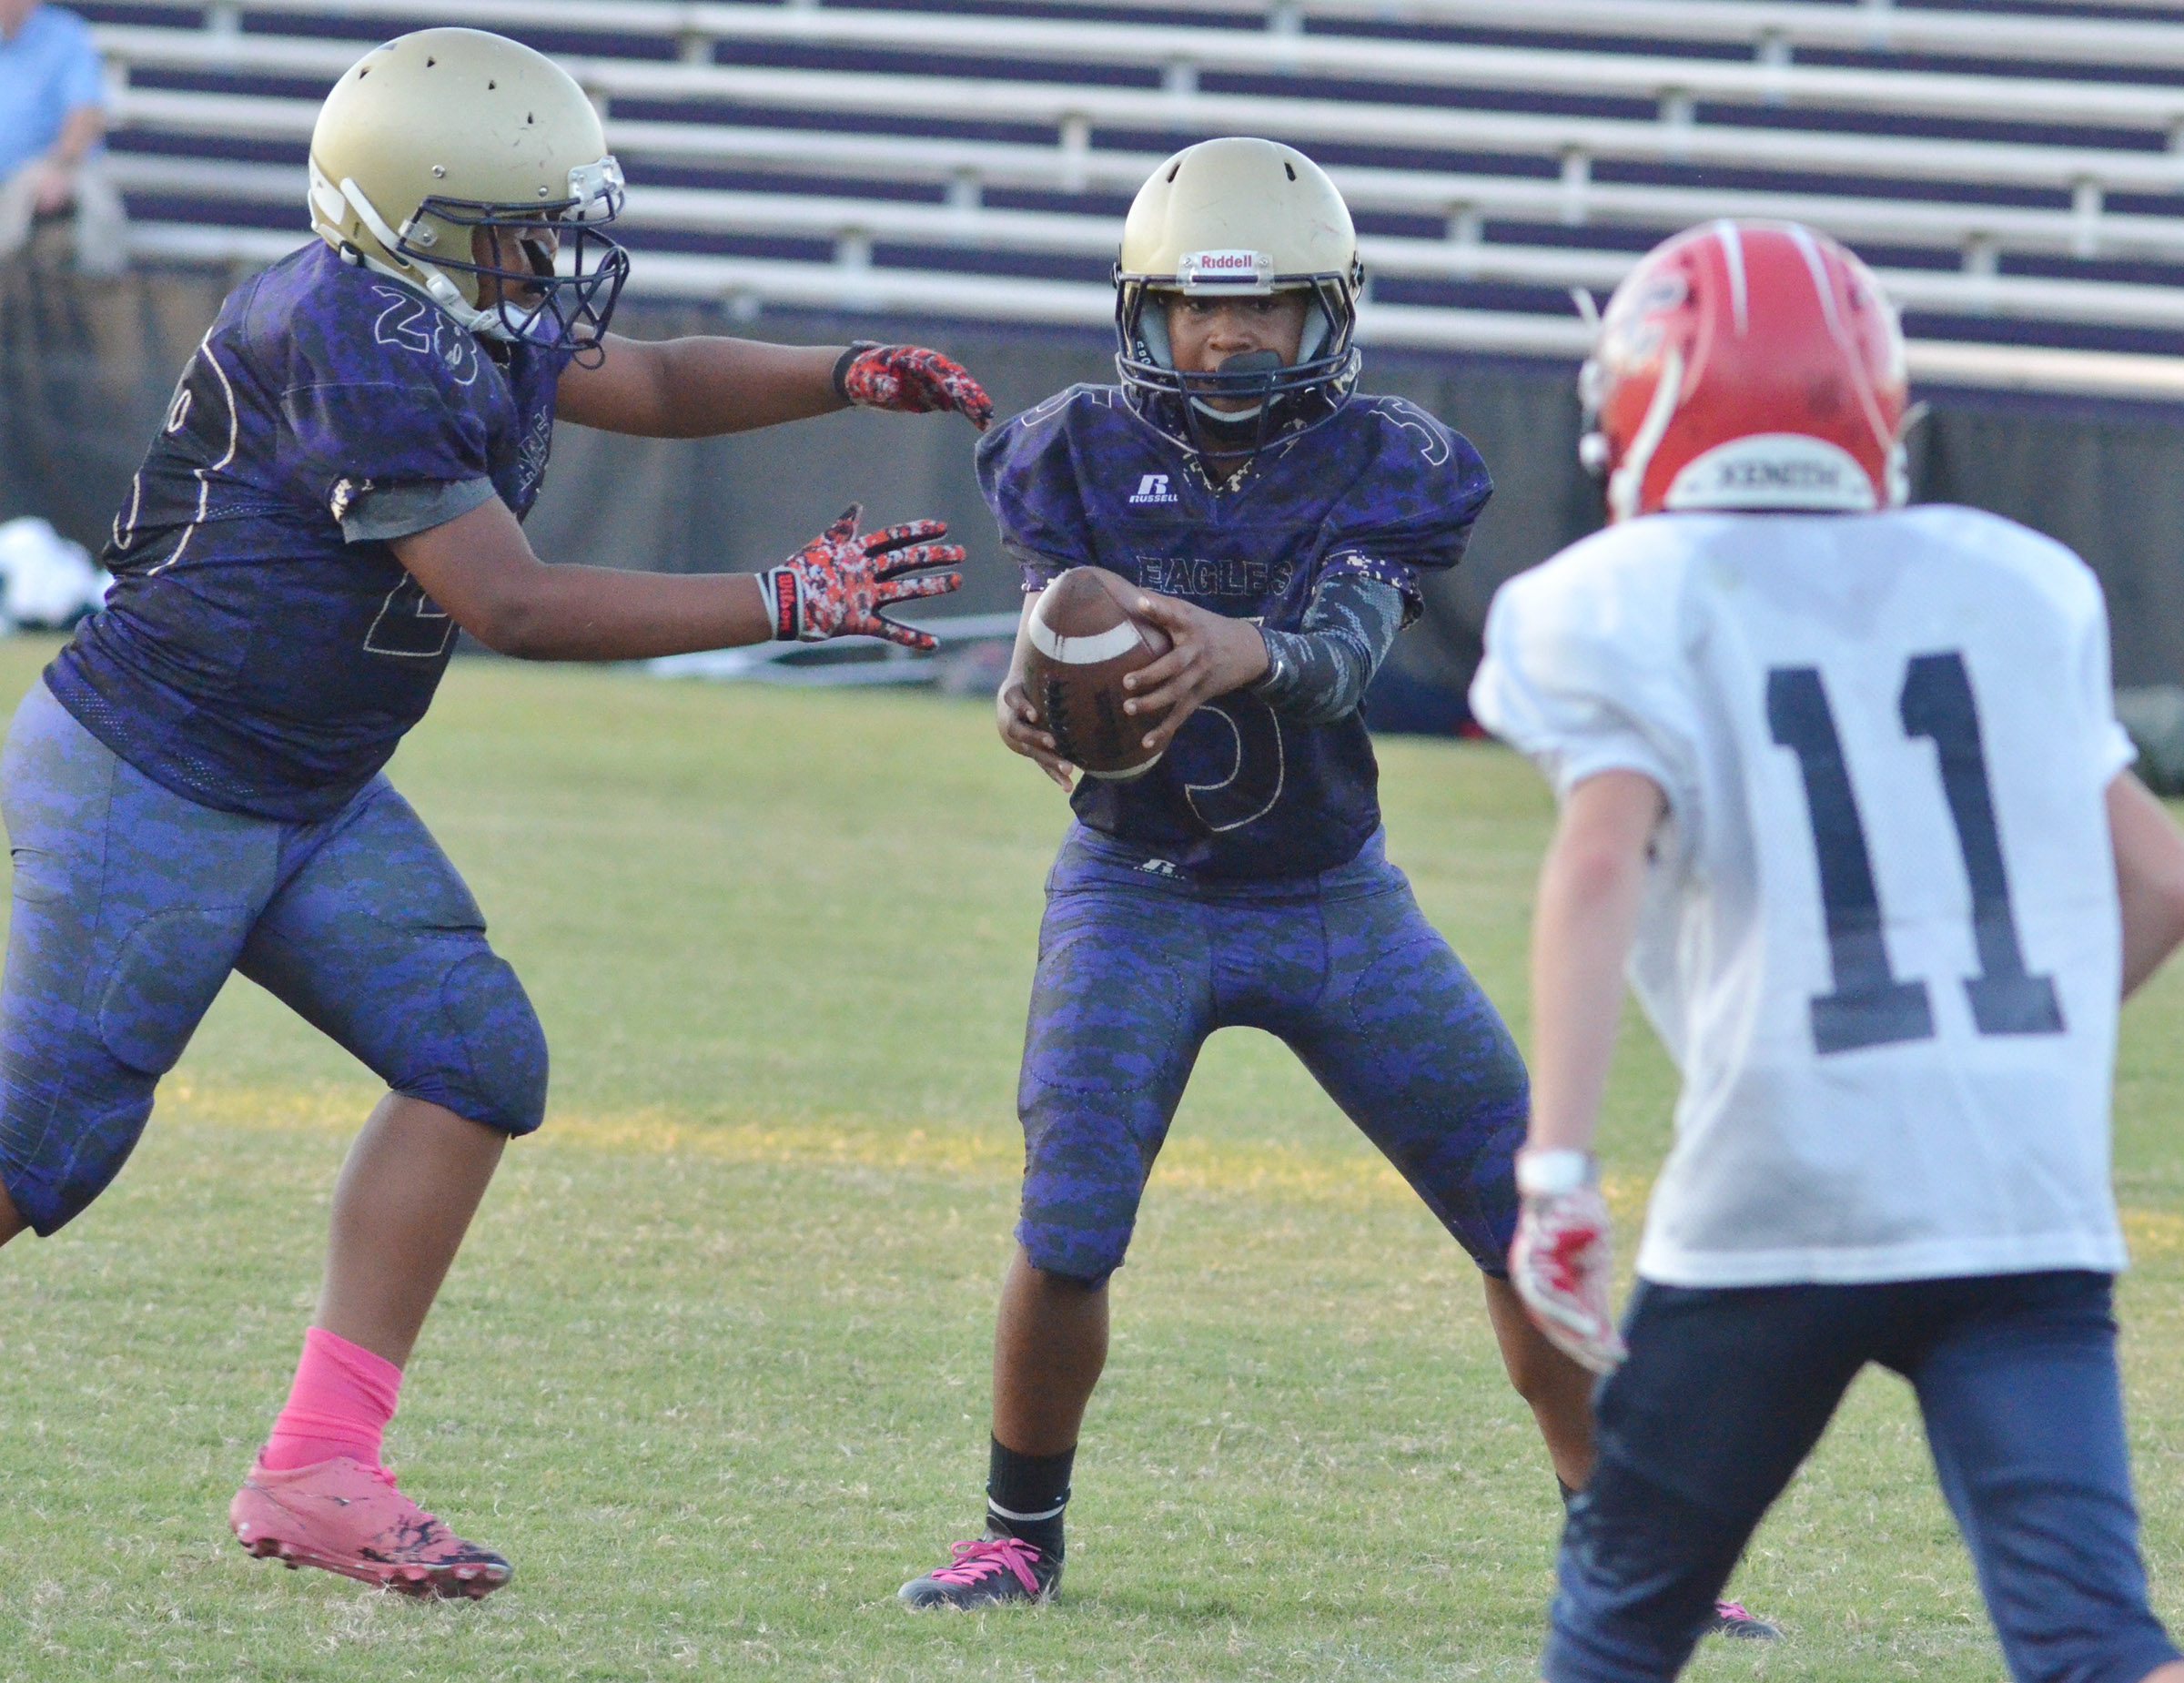 CMS seventh-grader Deondre Weathers passes the ball to his twin brother Keondre.